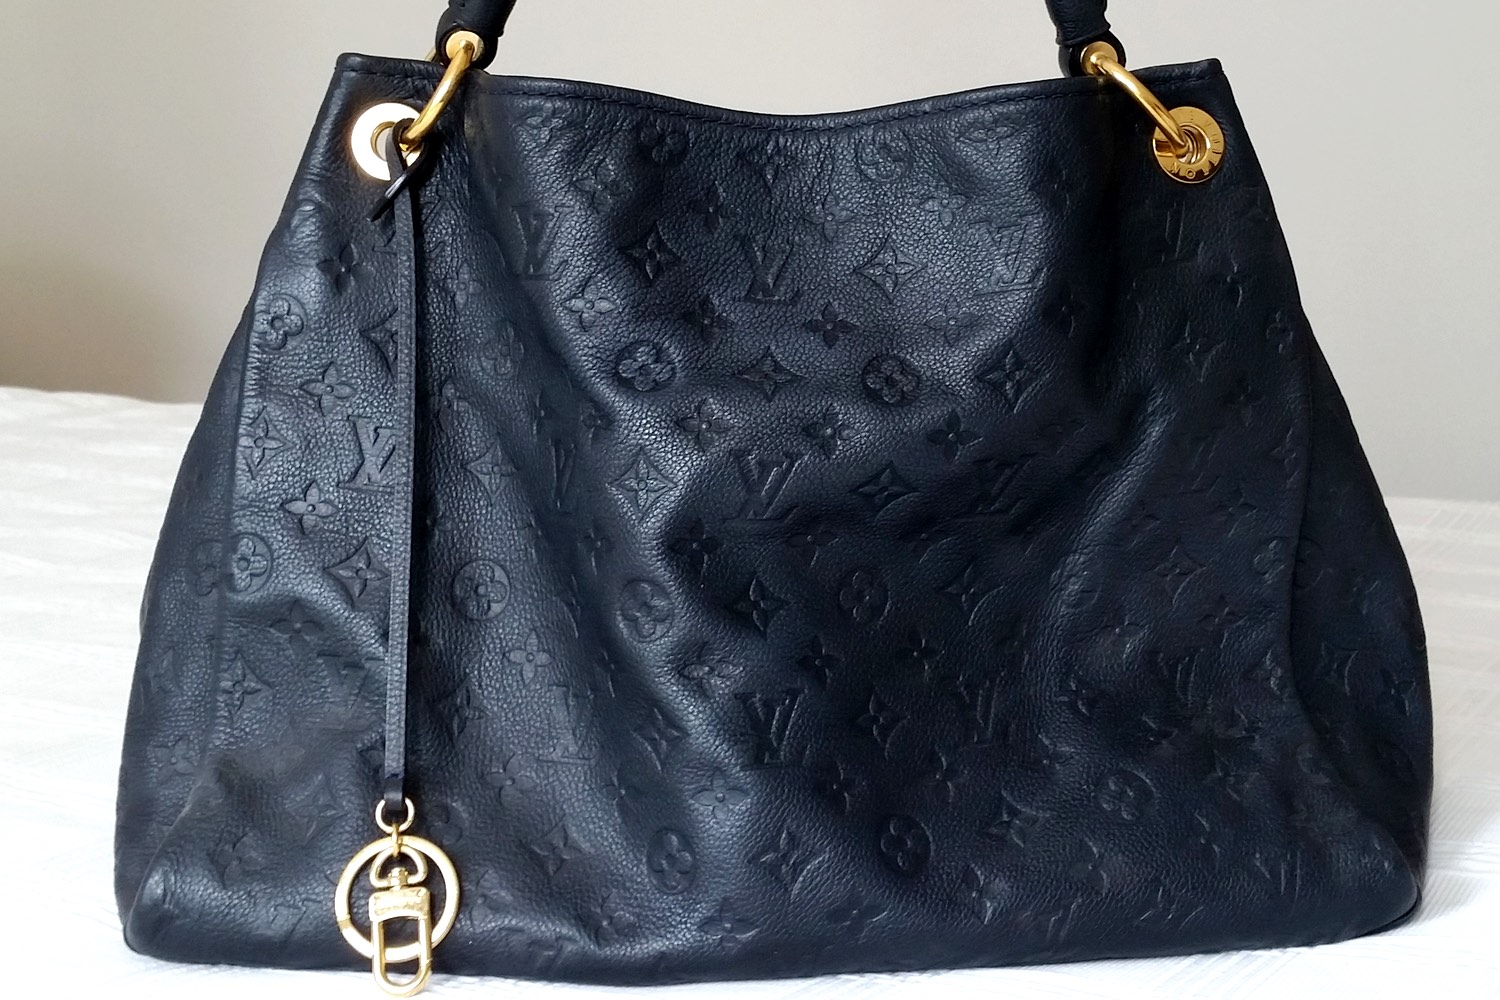 louis-vuitton-artsy-leather-bag-mm-character-32-lifestyle-c32